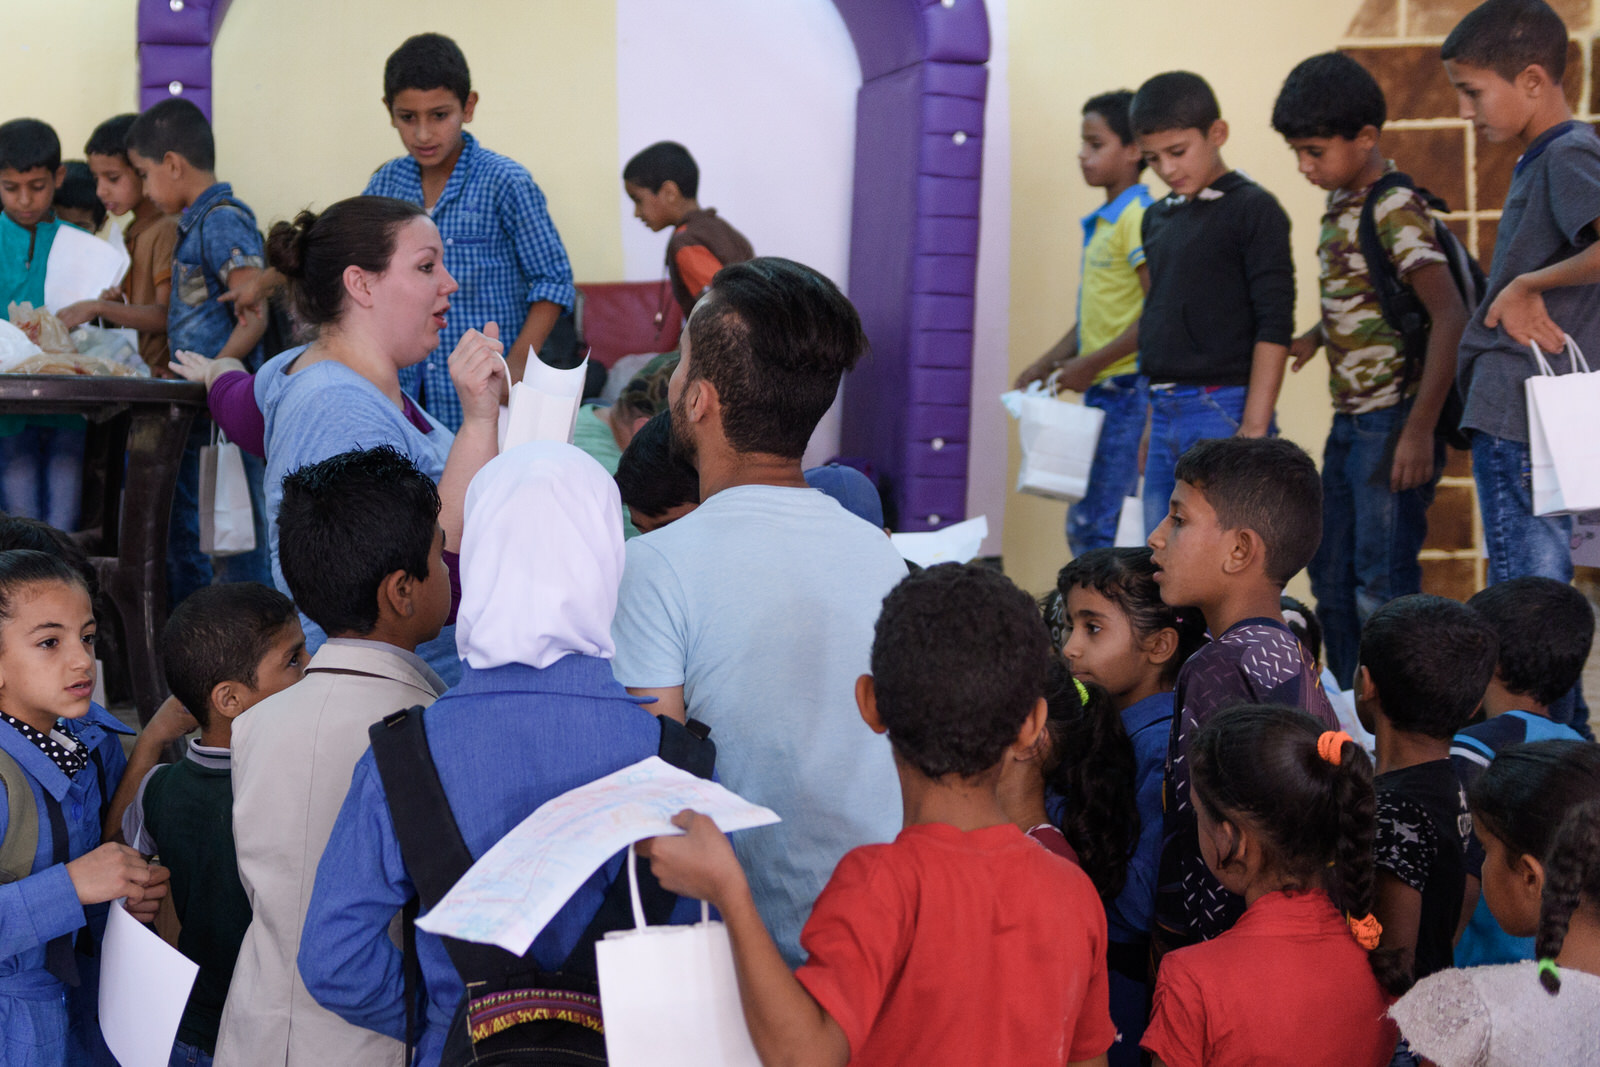 Chelsea and Mahmud distribute bags to eager children from Jerash refugee camp.